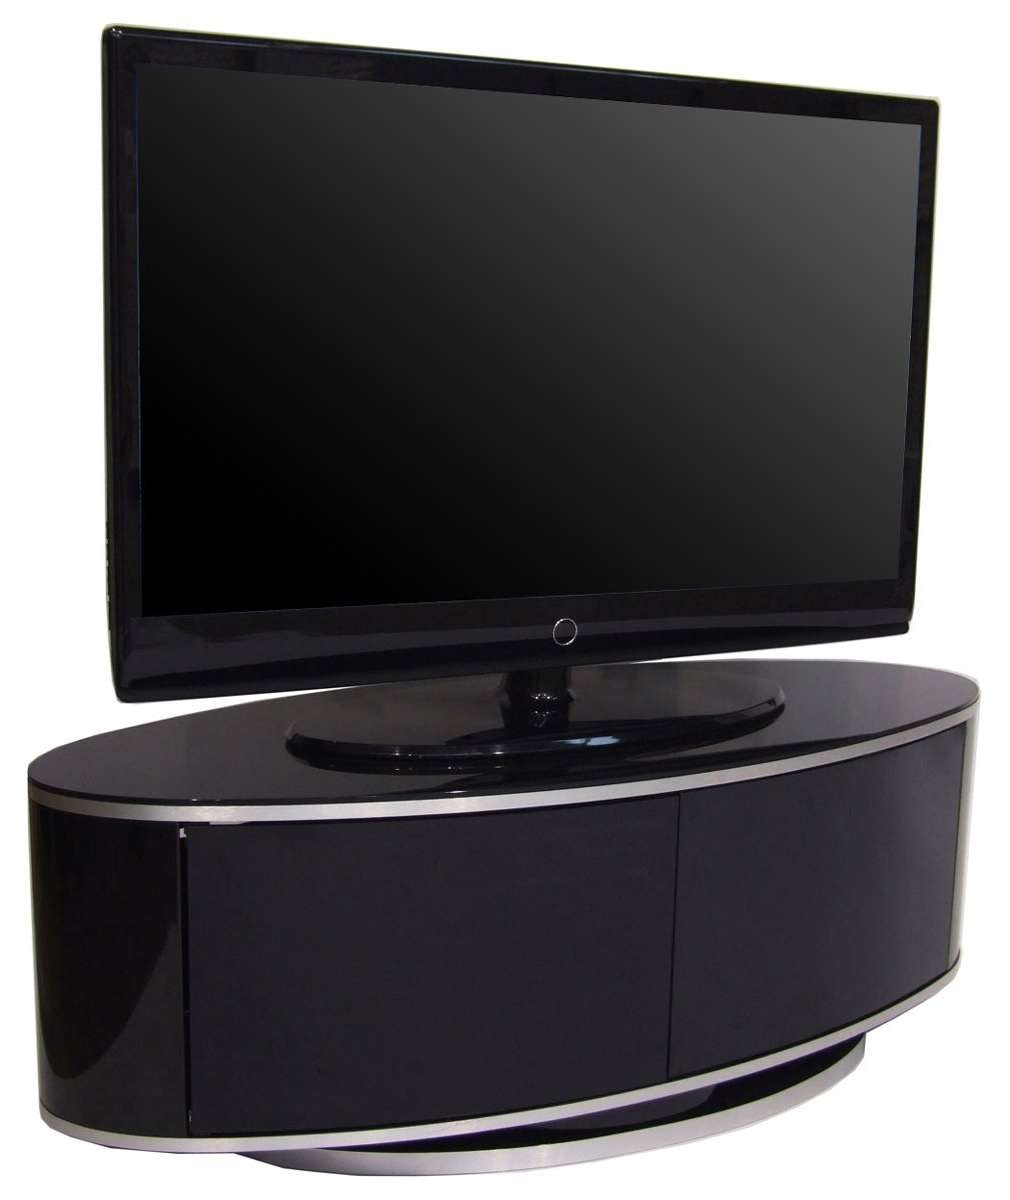 Luna High Gloss Black Oval Tv Cabinet With Regard To White Gloss Oval Tv Stands (View 4 of 15)